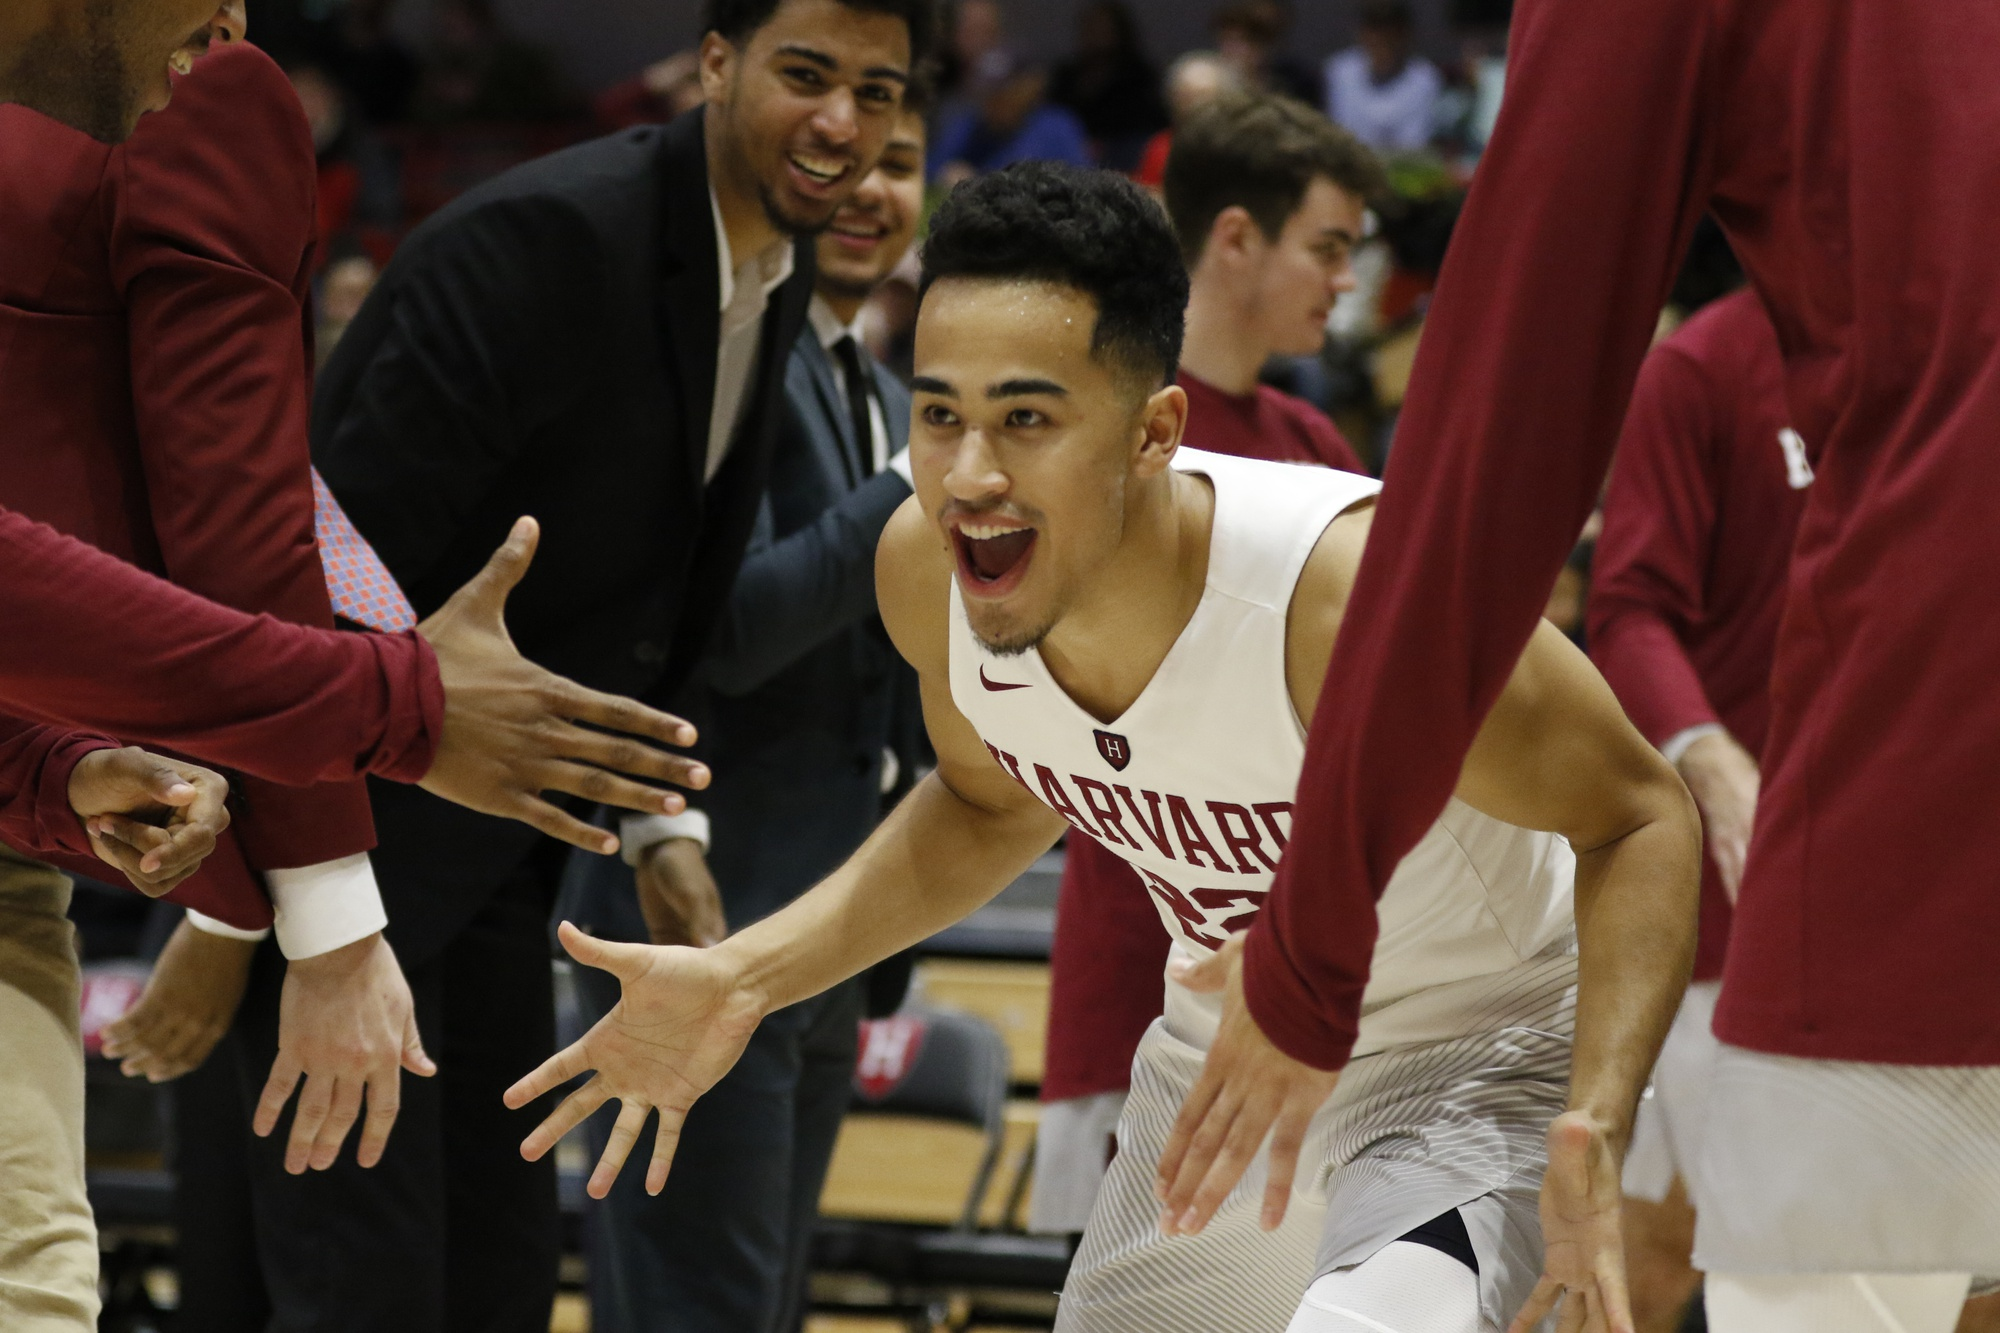 Junior guard Christian Juzang logged 32 minutes against MIT, a team-high on the night.